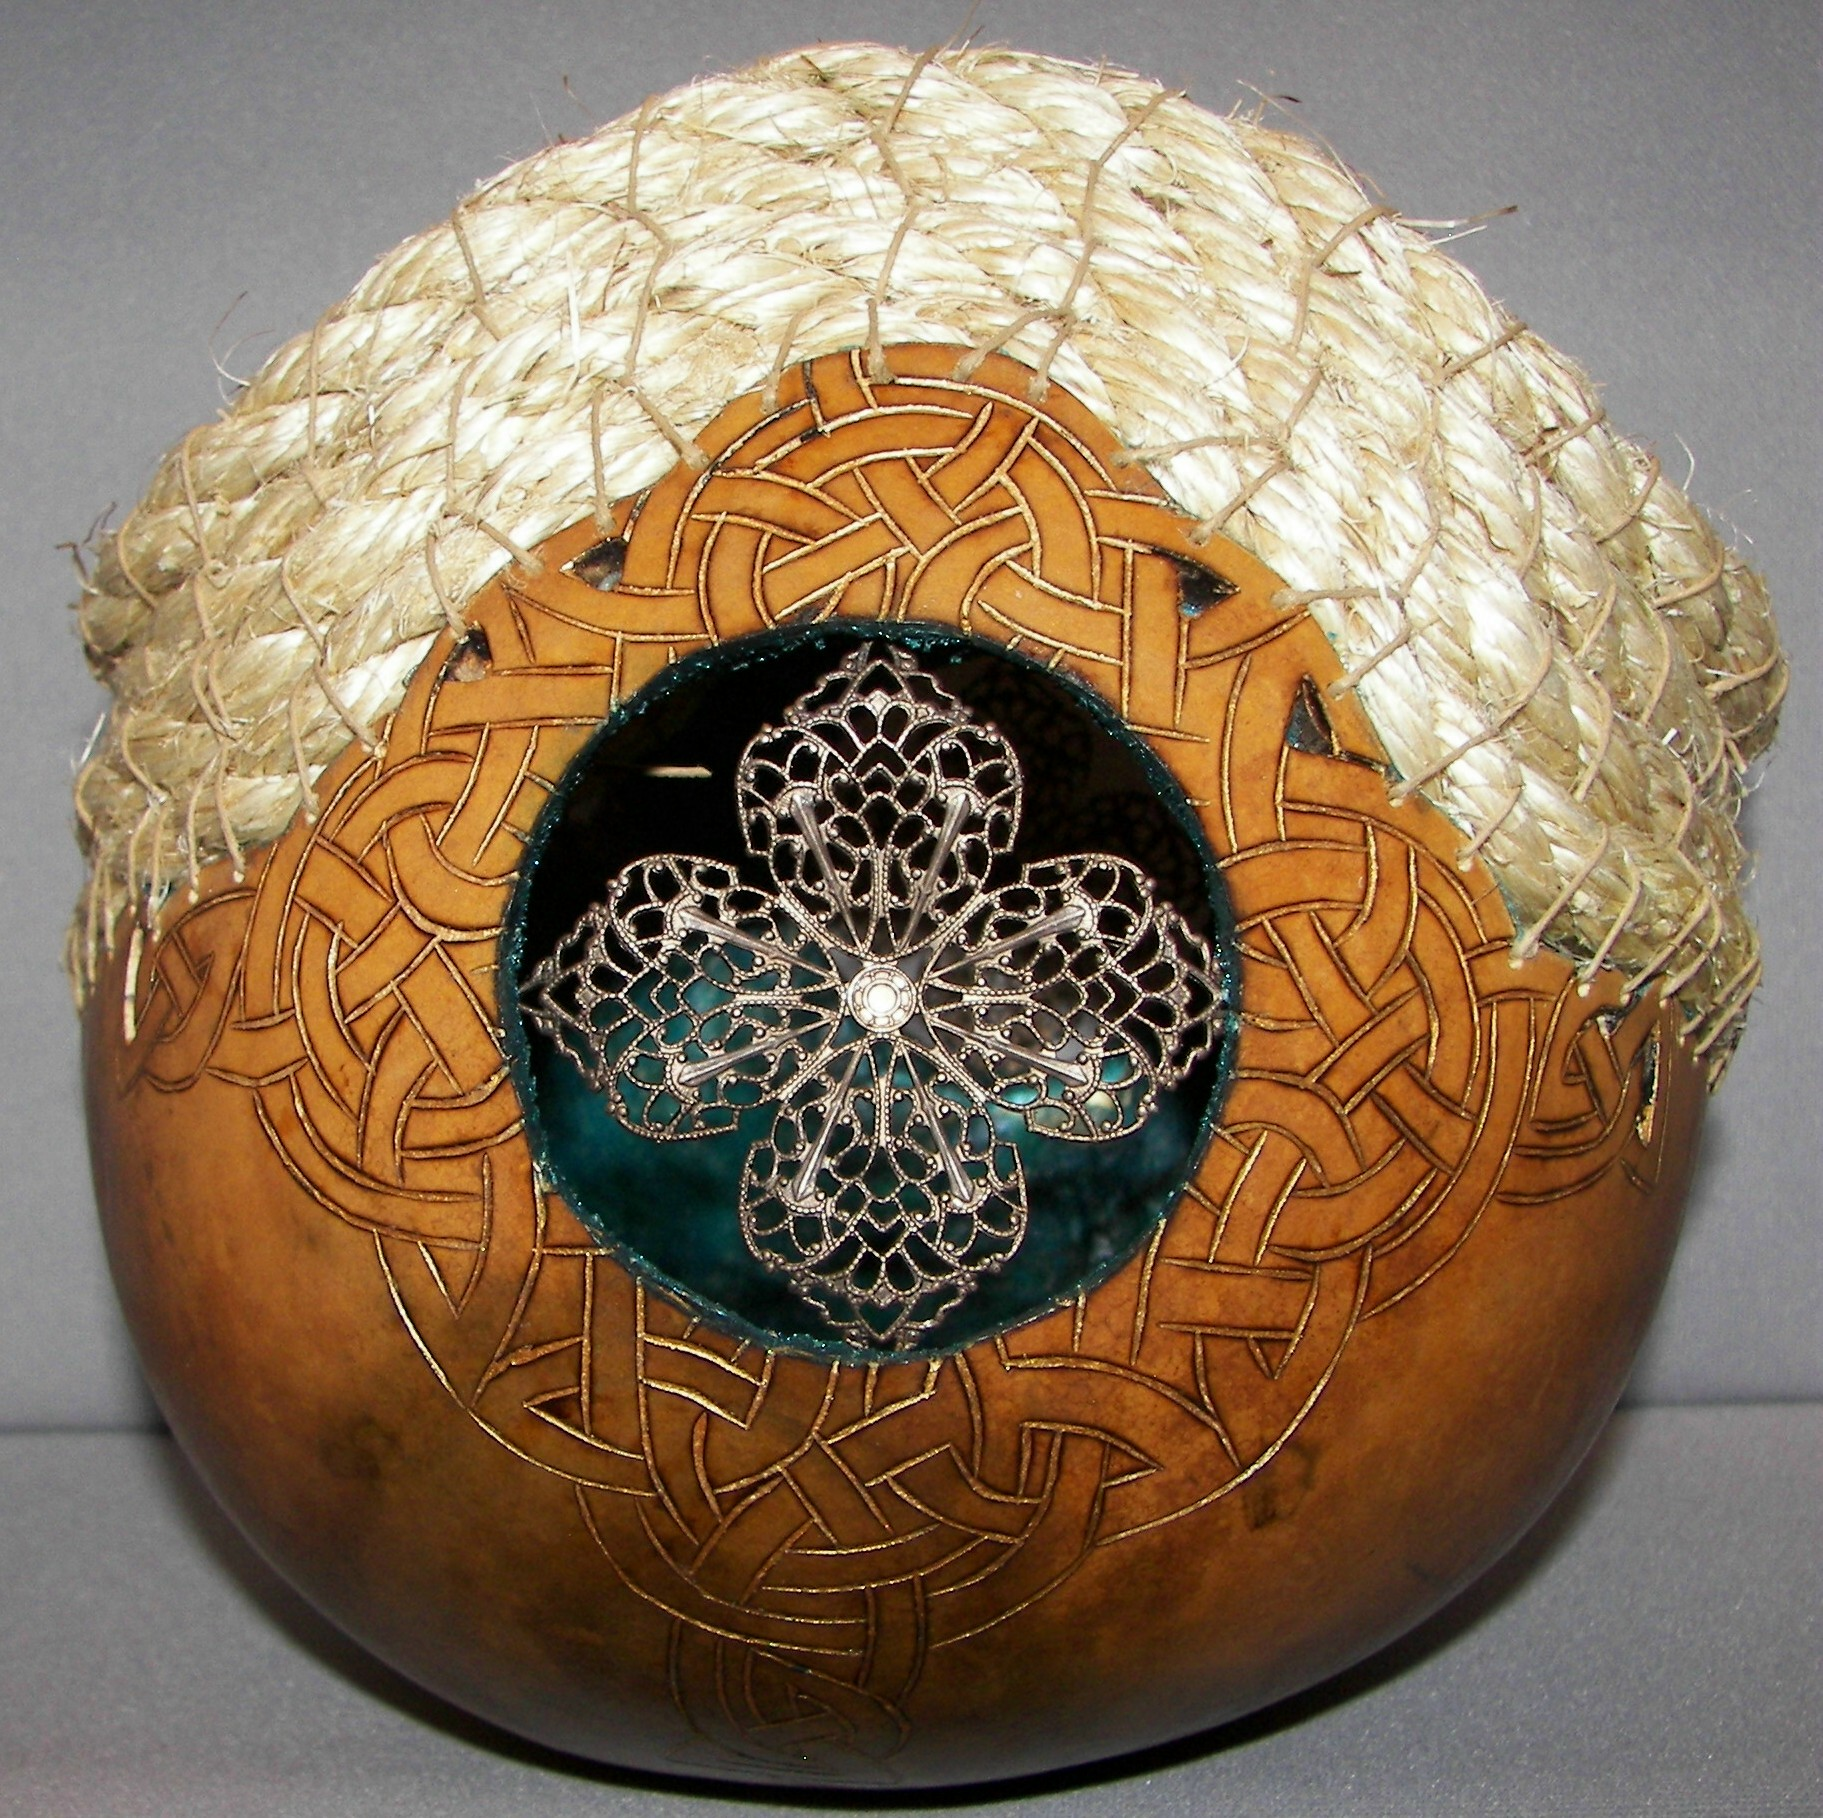 gourd-celtic-design-w-rope-braid